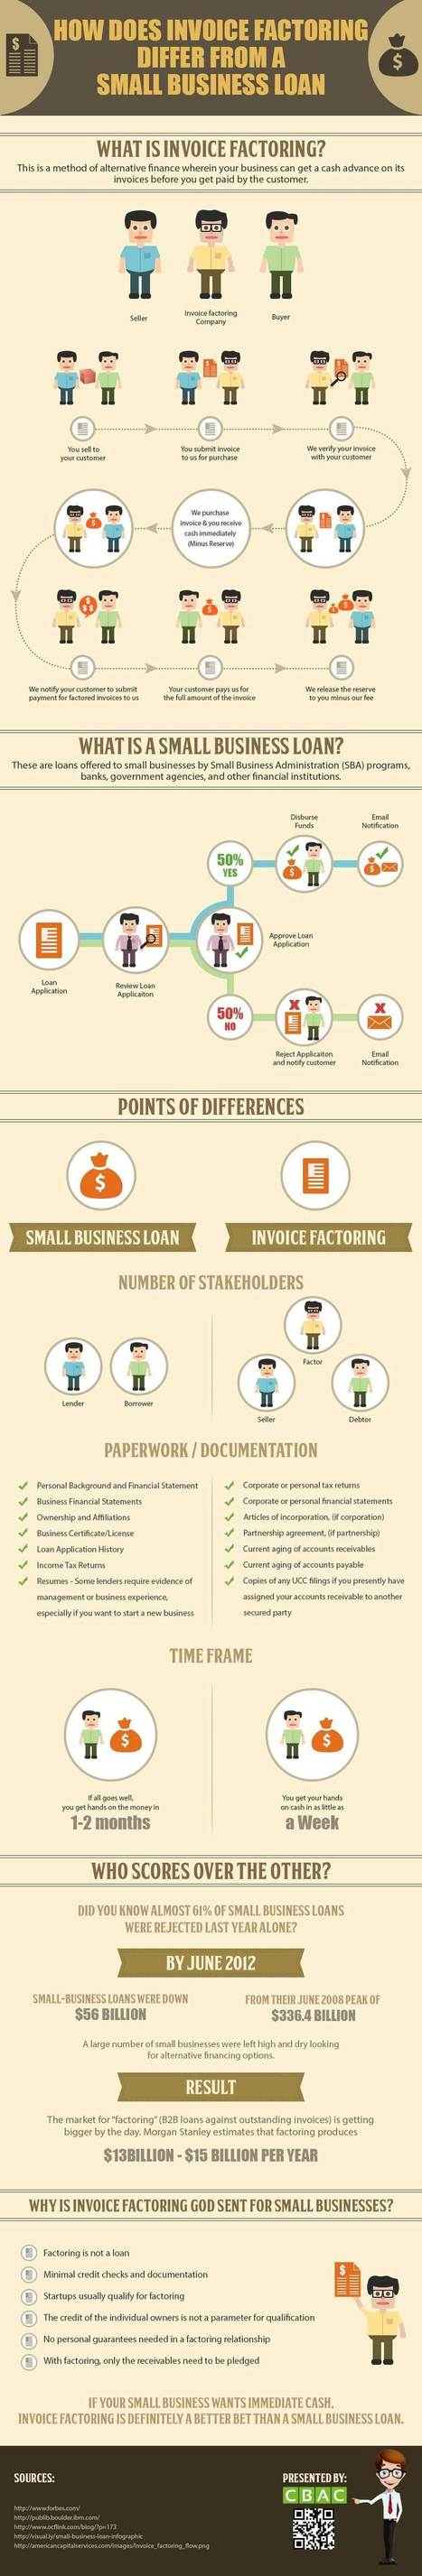 Why Invoice Factoring is required for Small Business Loan? | Infographic | All Infographics | Scoop.it